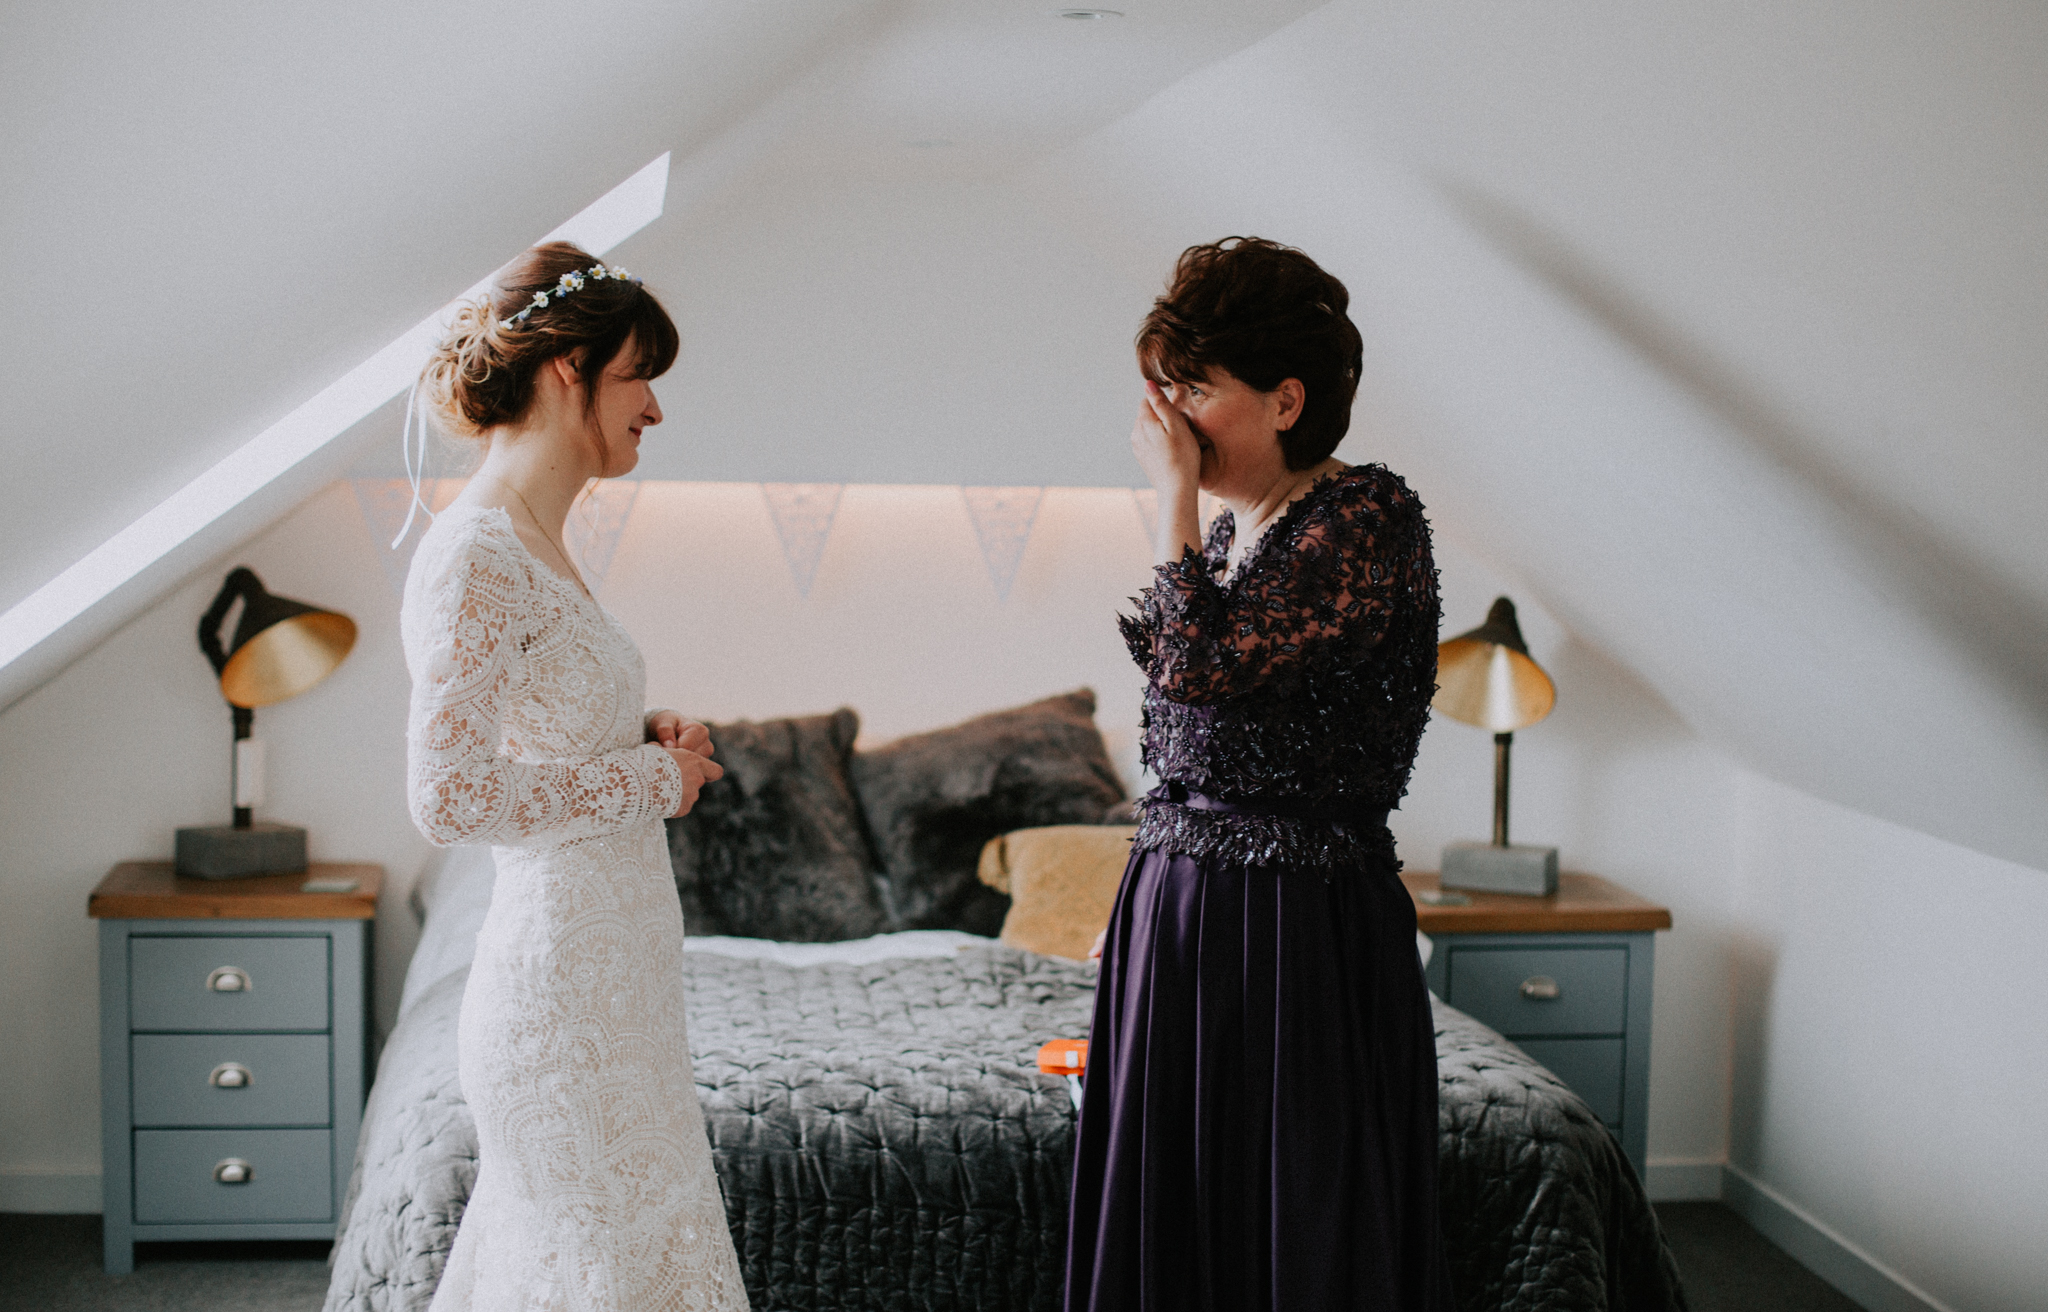 So emotional moment between bride and her mother before the wedding ceremony